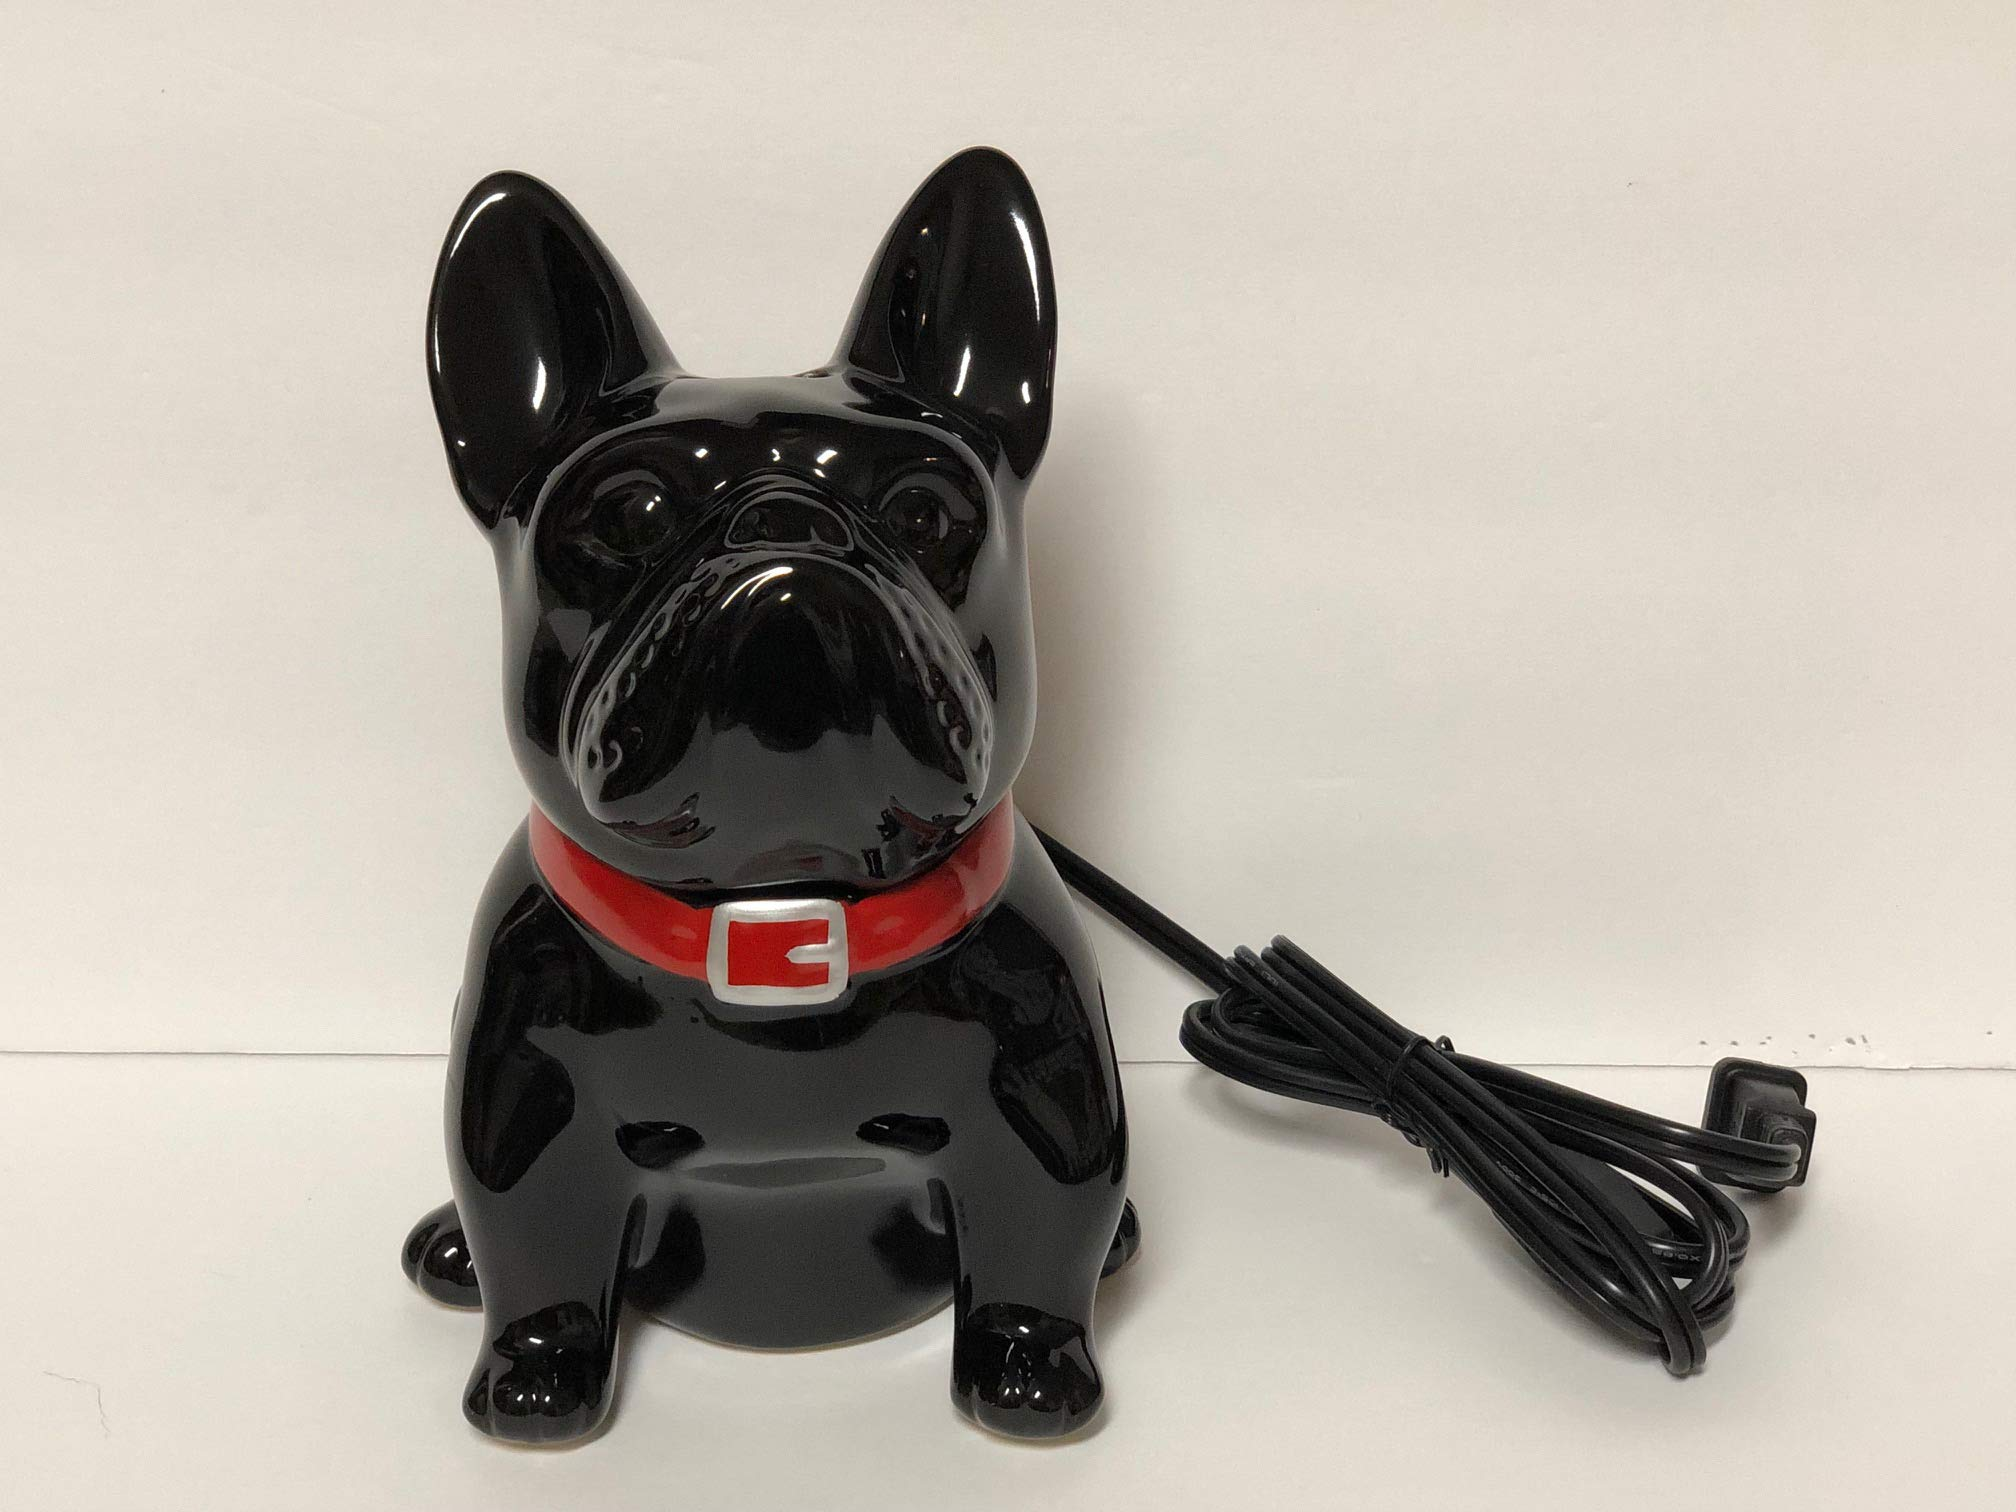 Scentsy Frenchie Dog Waxless Candle Warmer